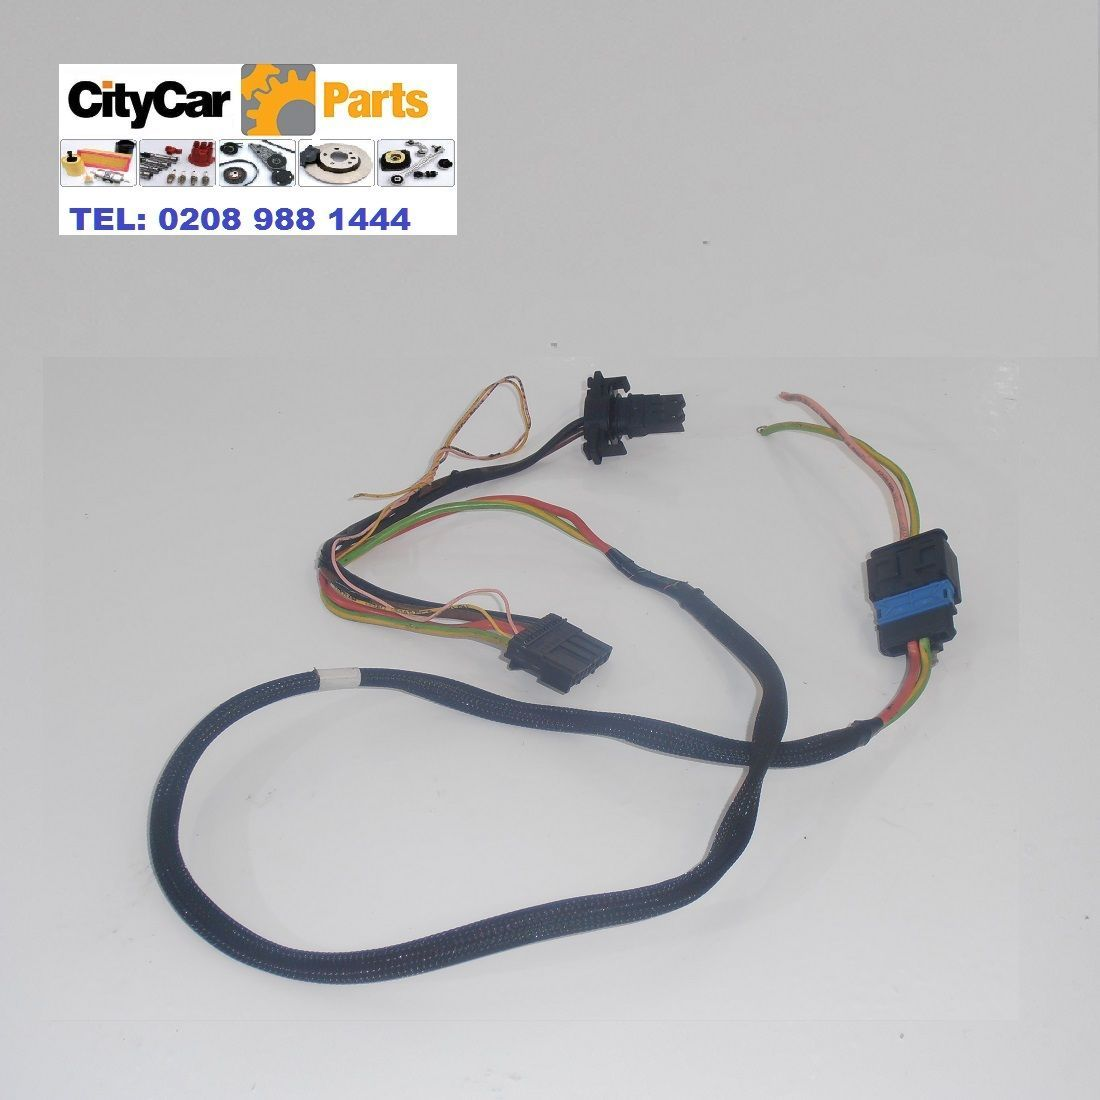 Peugeot 308 Wiring Loom Manual Guide Diagram Towbar Model From 2007 To 13 Hatchback Ac Heater Blower Plug Electric